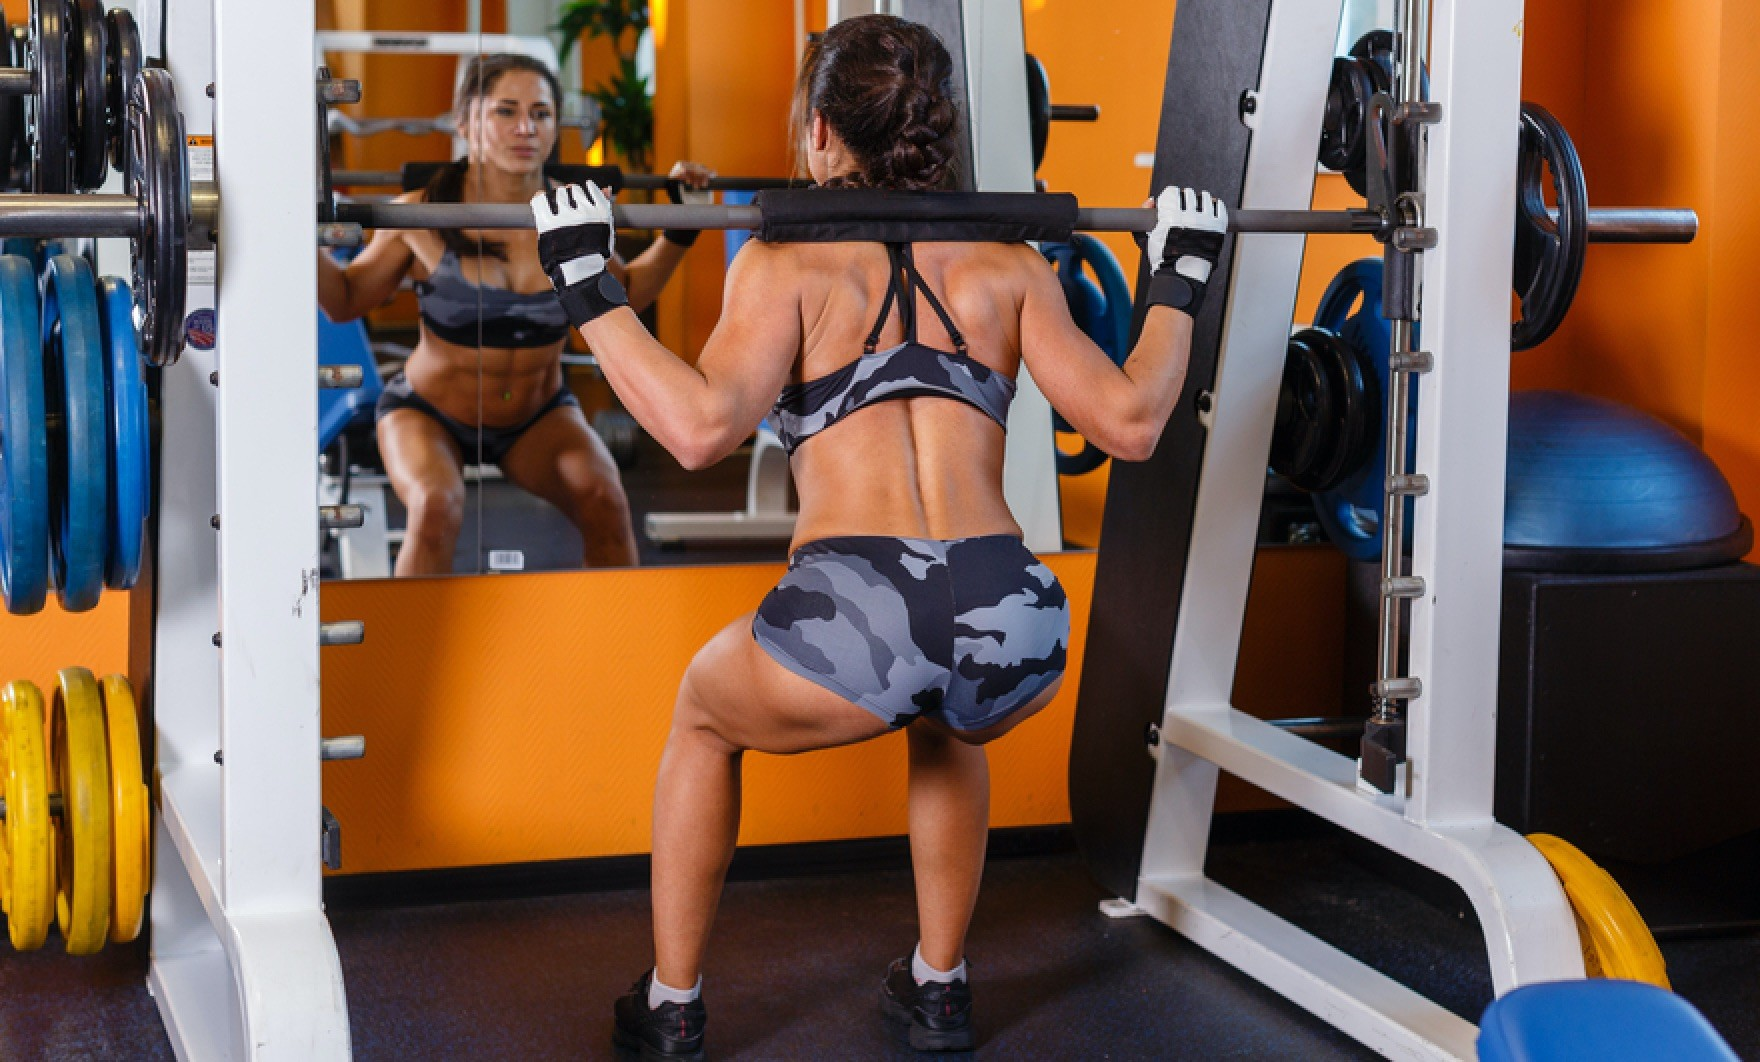 Lack of Heavy Weights When Training From Home